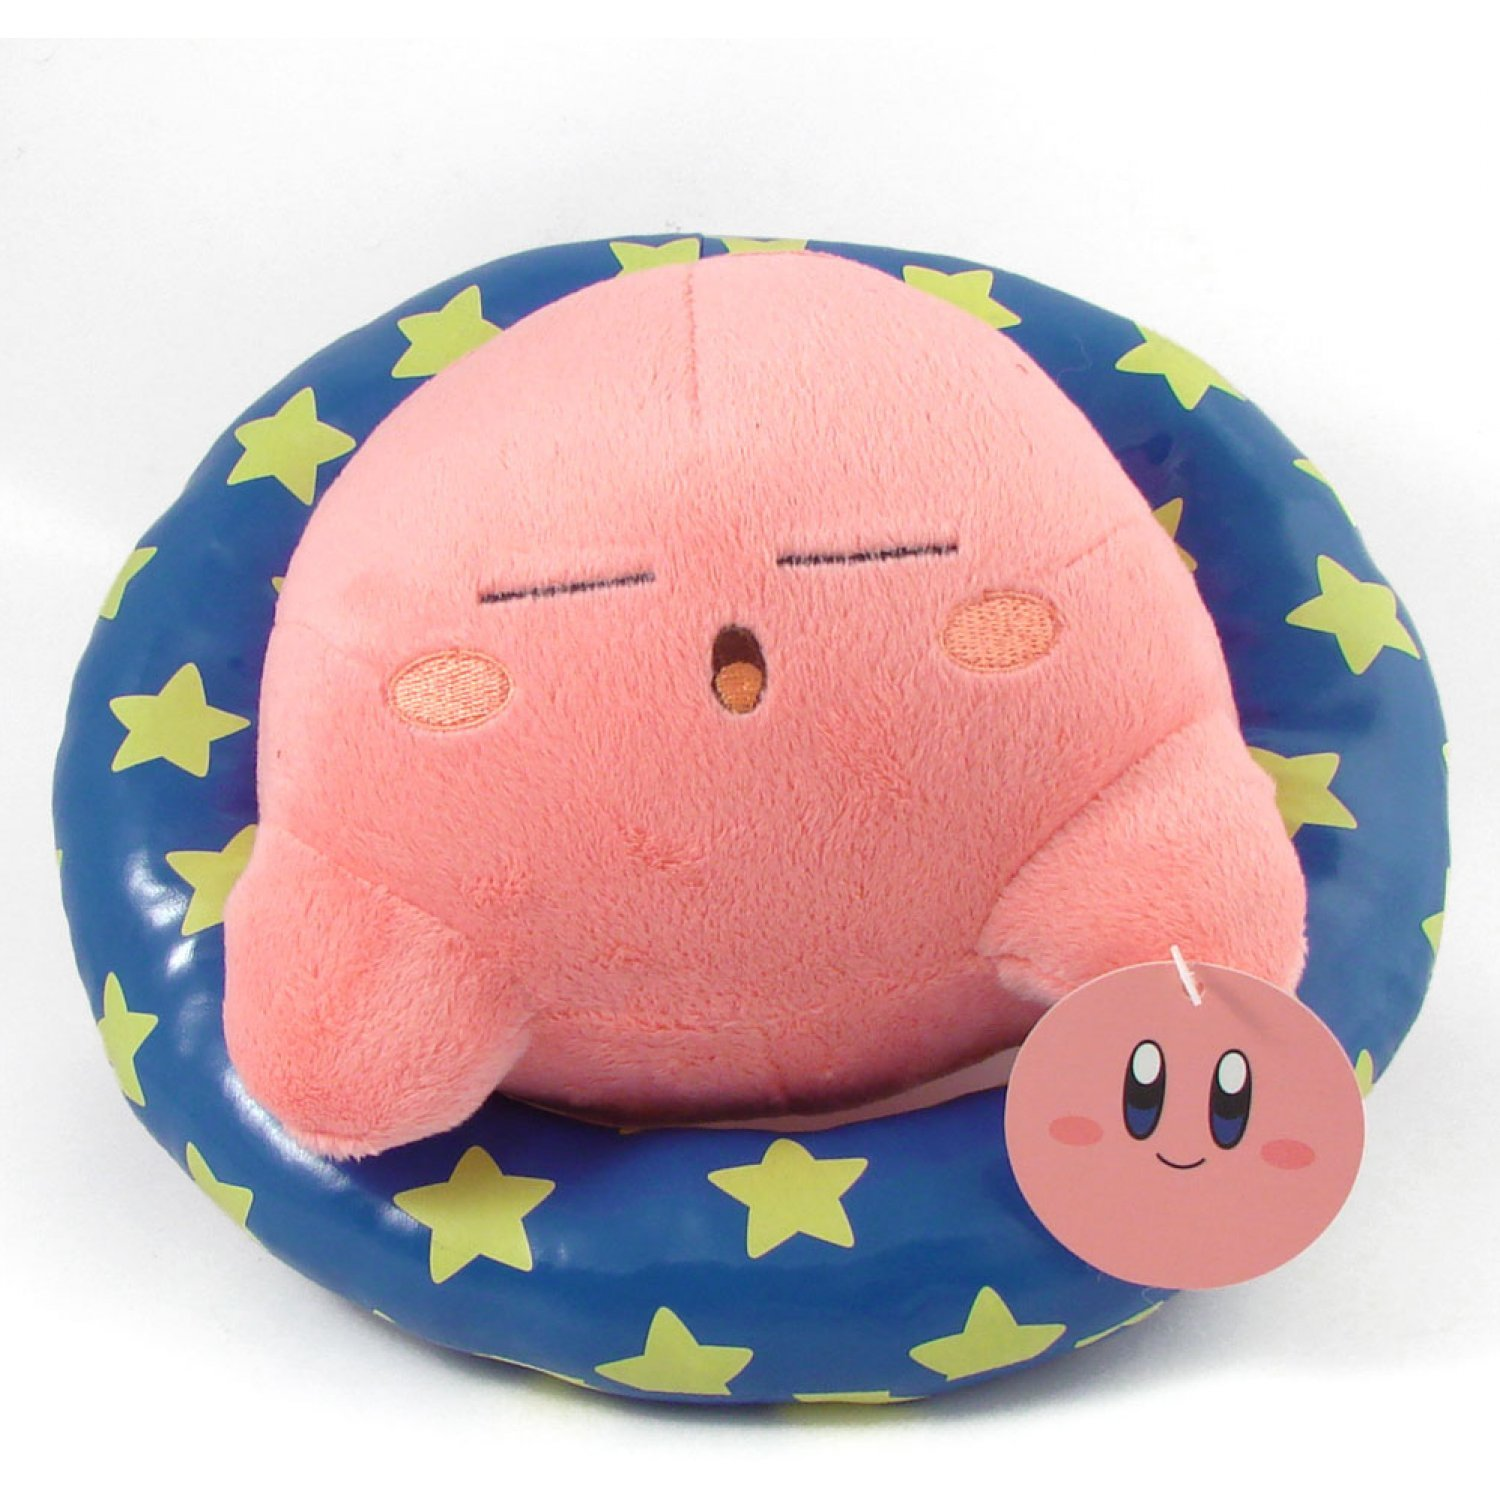 Kirby plush toy